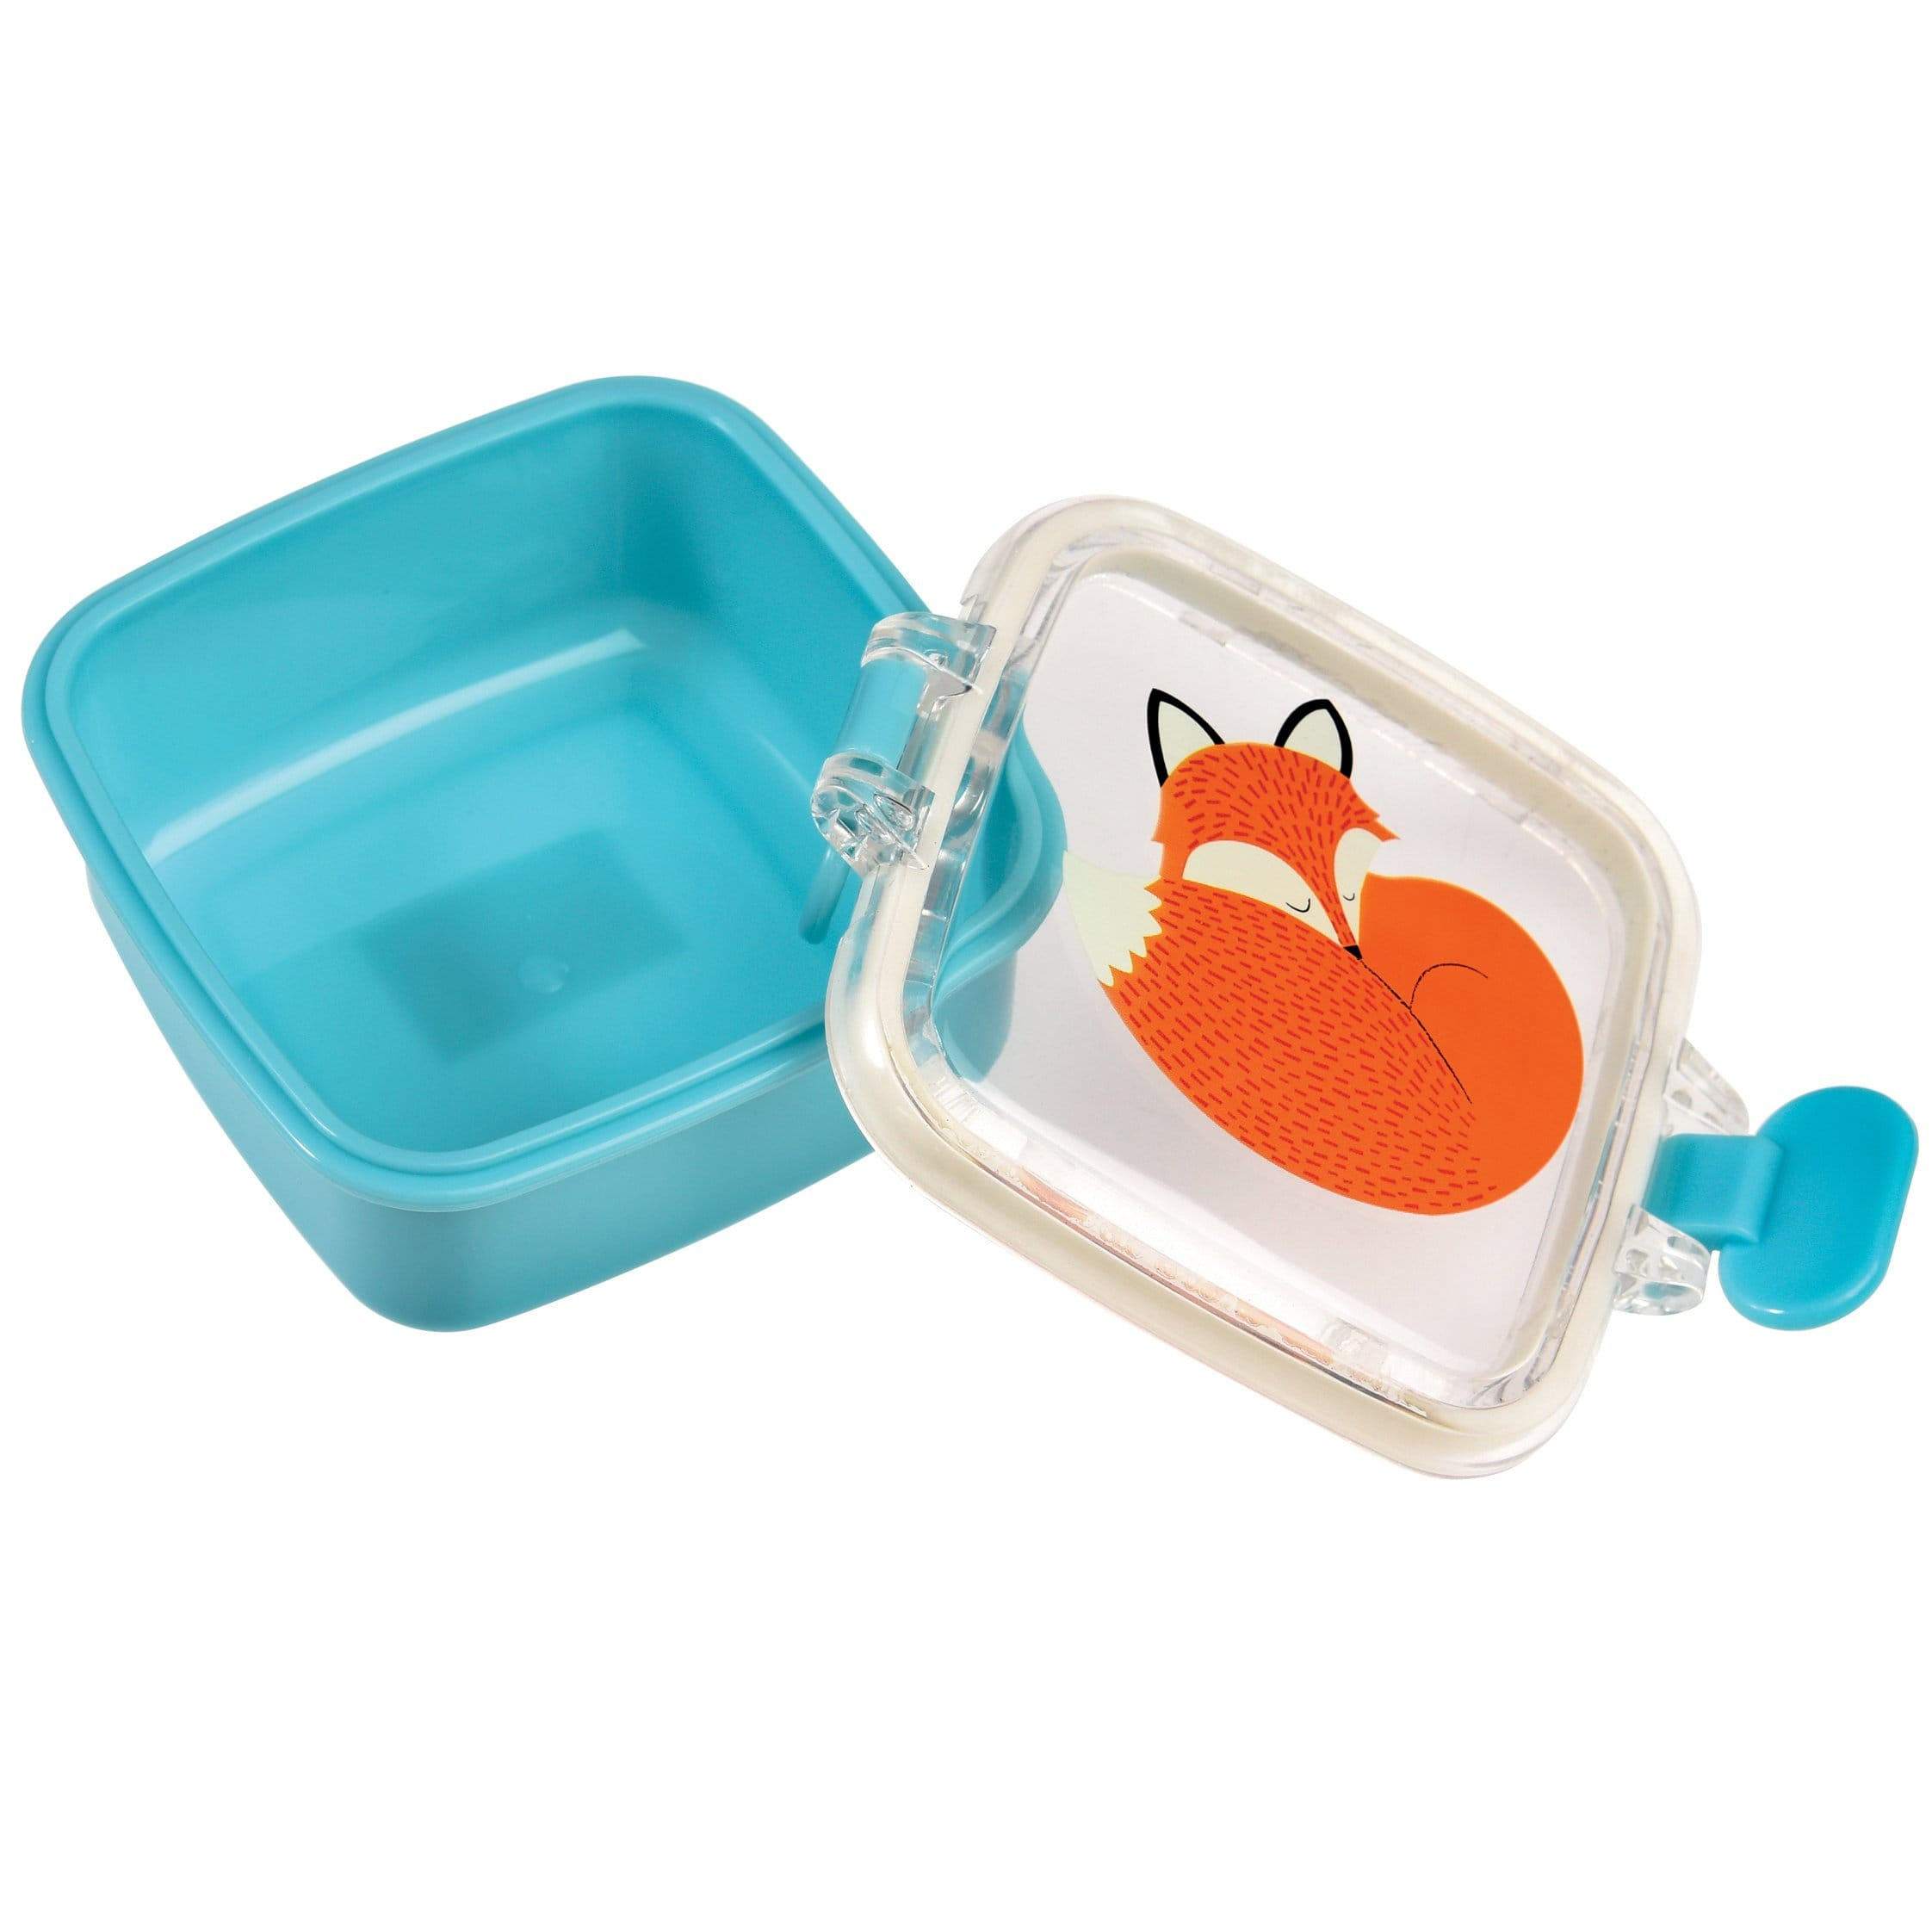 MINI SNACK POT